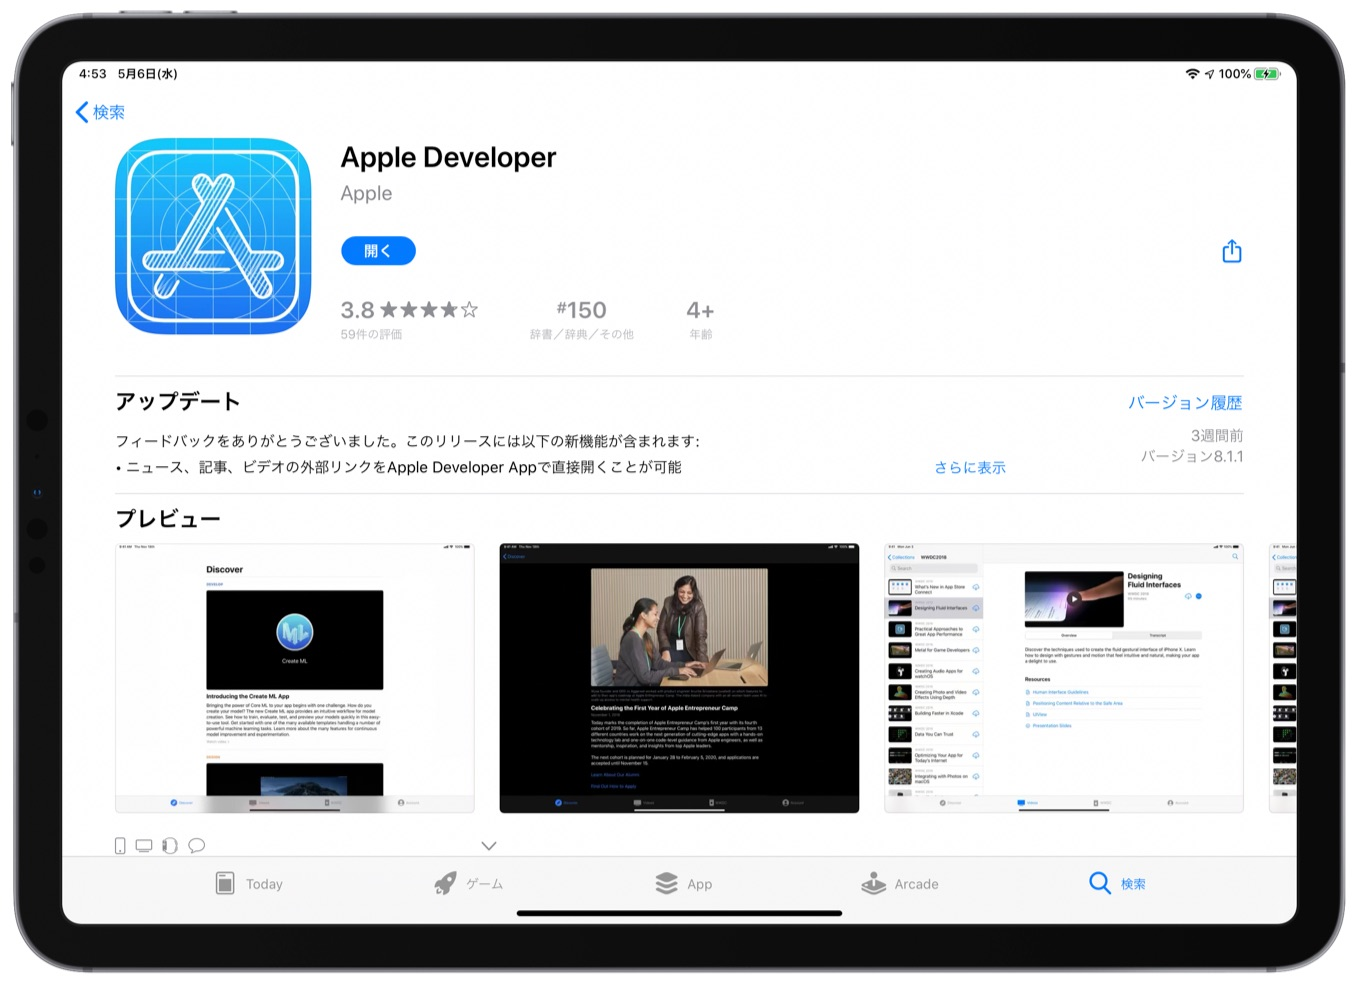 Apple Developer 2020 app